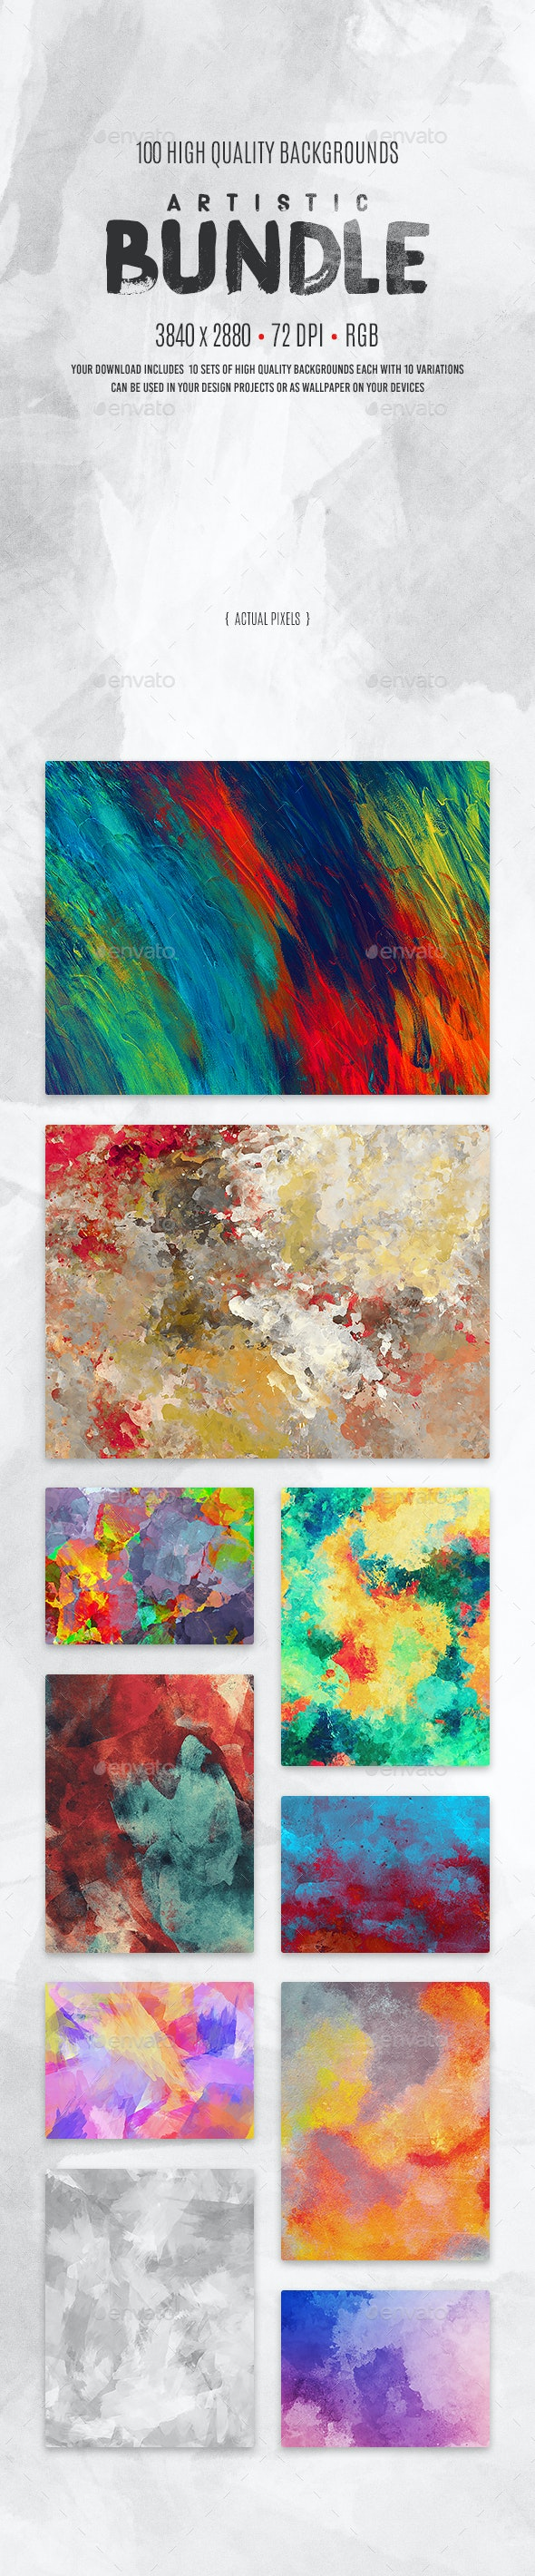 Artistic Background Bundle - Abstract Backgrounds